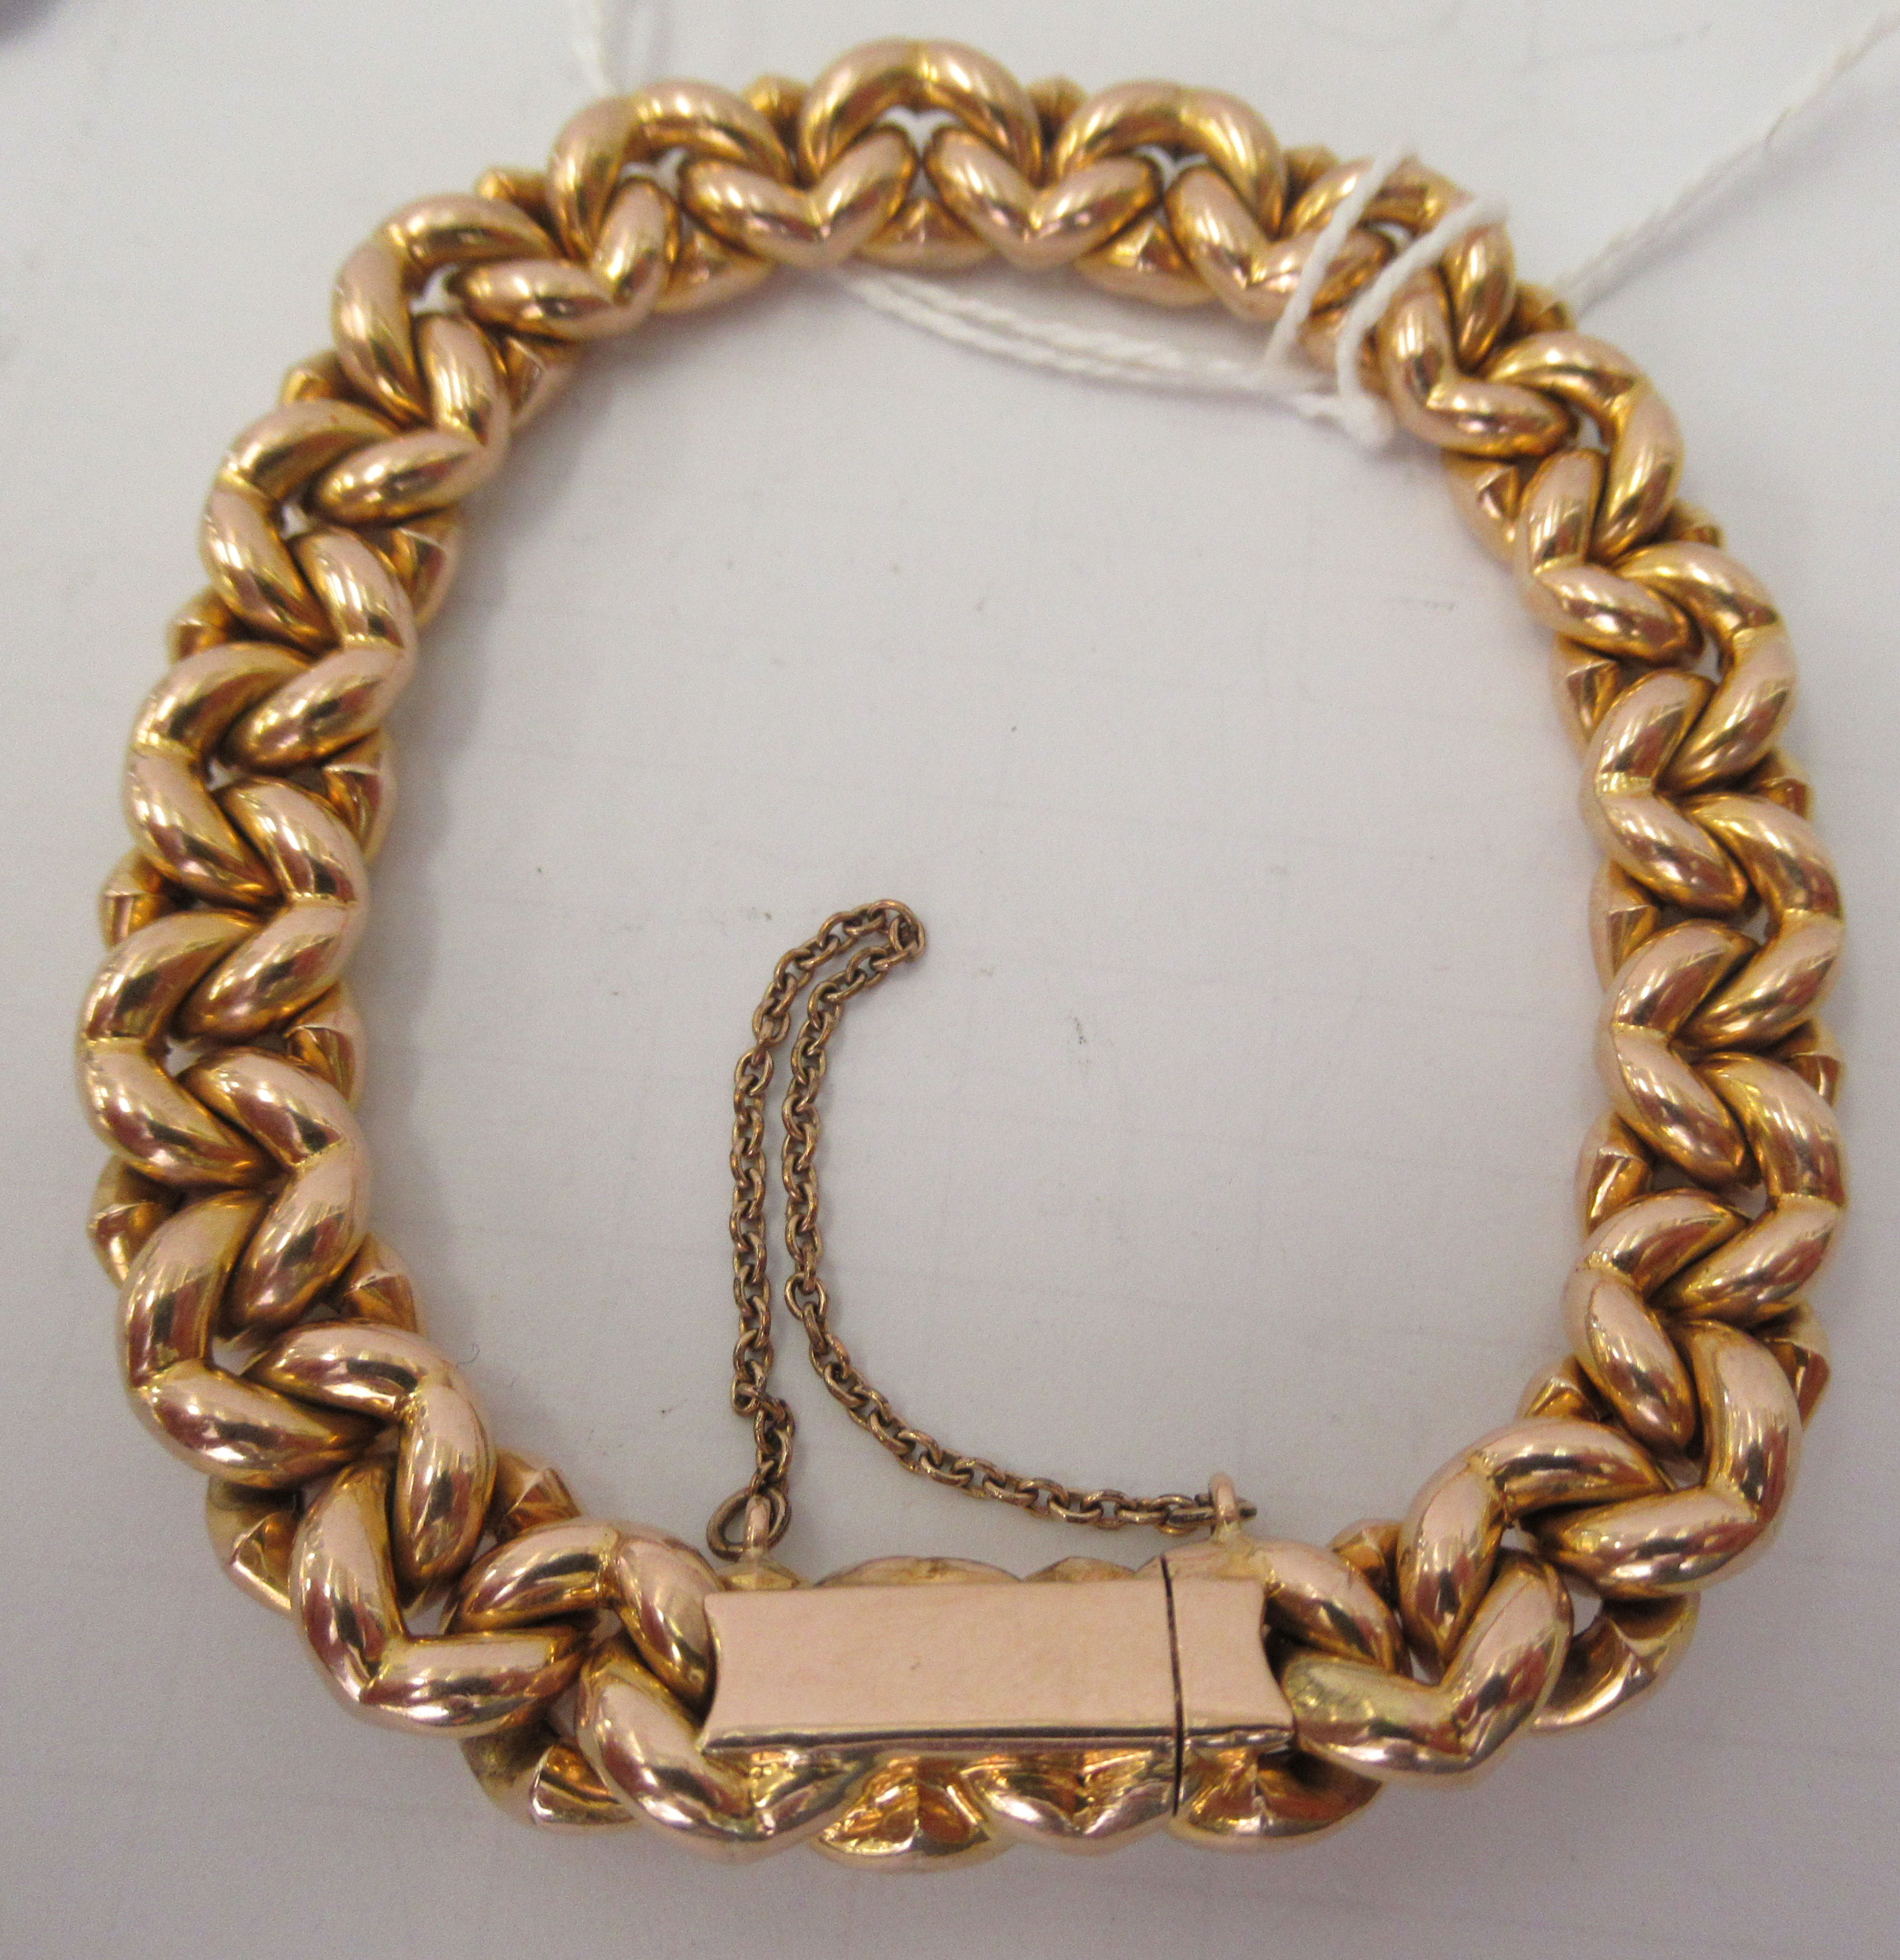 A 15ct gold fancy link bracelet, on a bayonet clasp and safety chain - Image 2 of 3